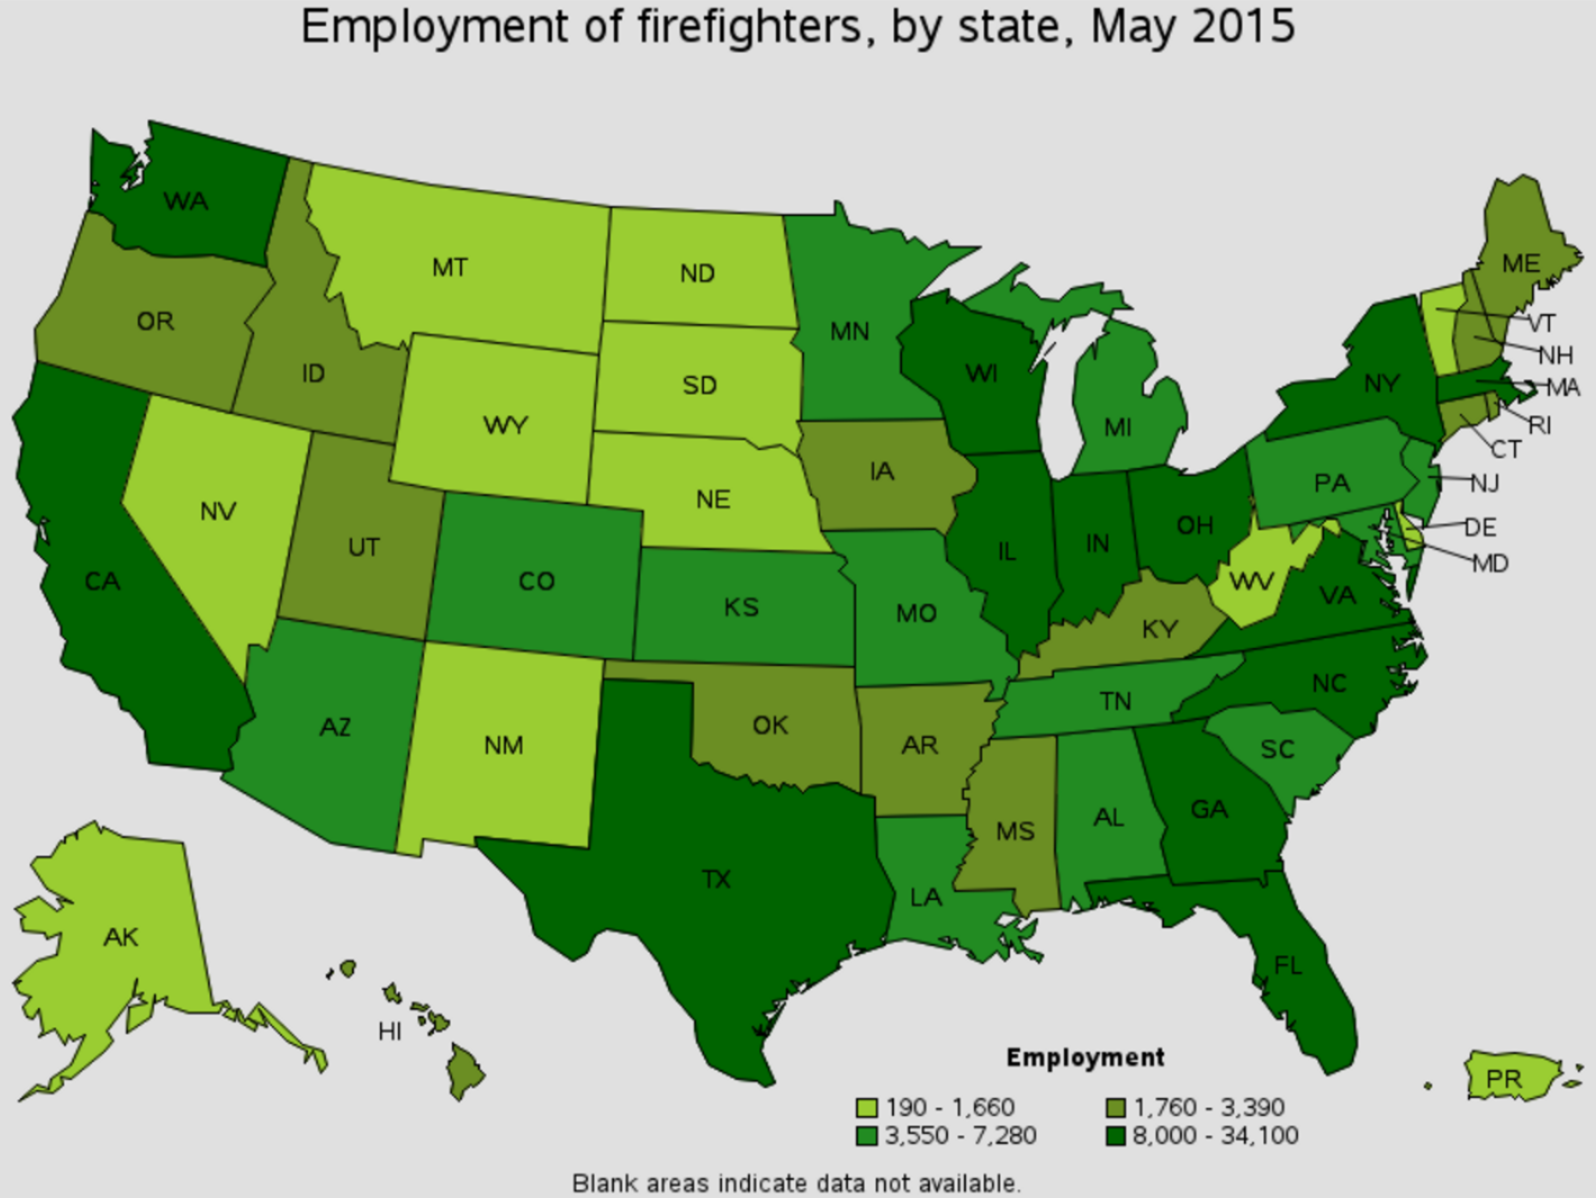 firefighter job outlook by state Wesson Mississippi